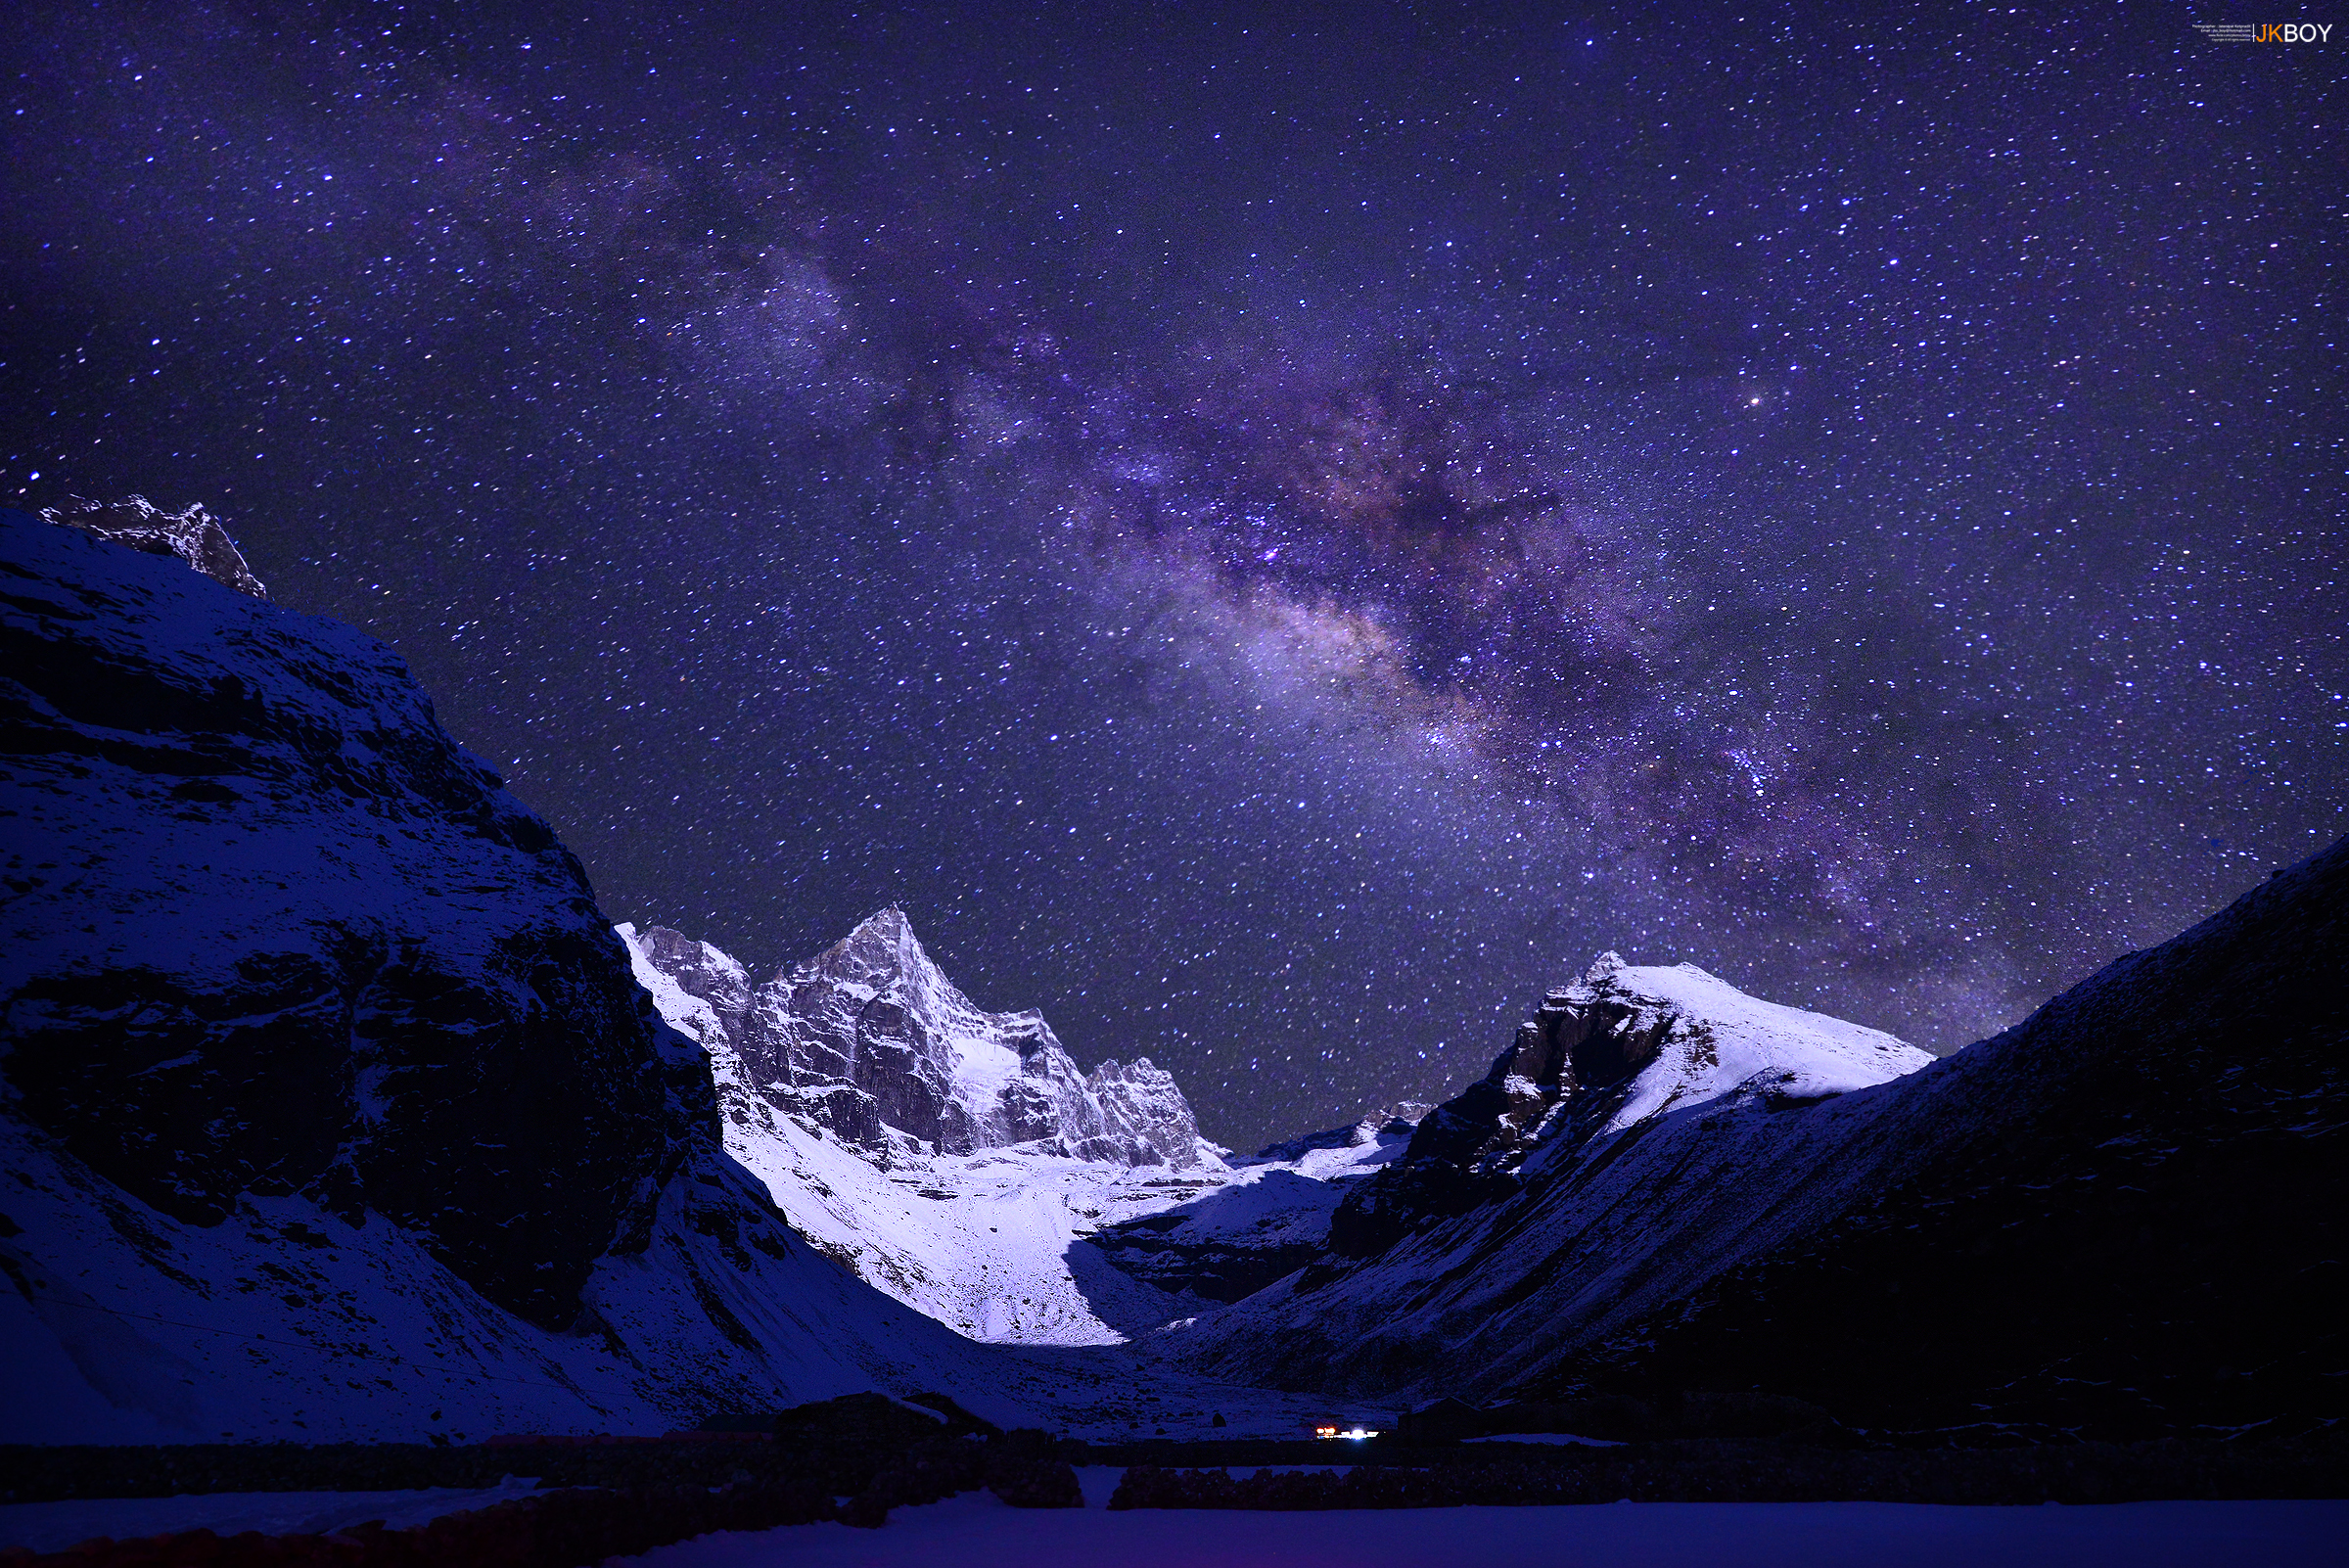 Himalayas Night at Everest region Full HD Wallpaper and ...